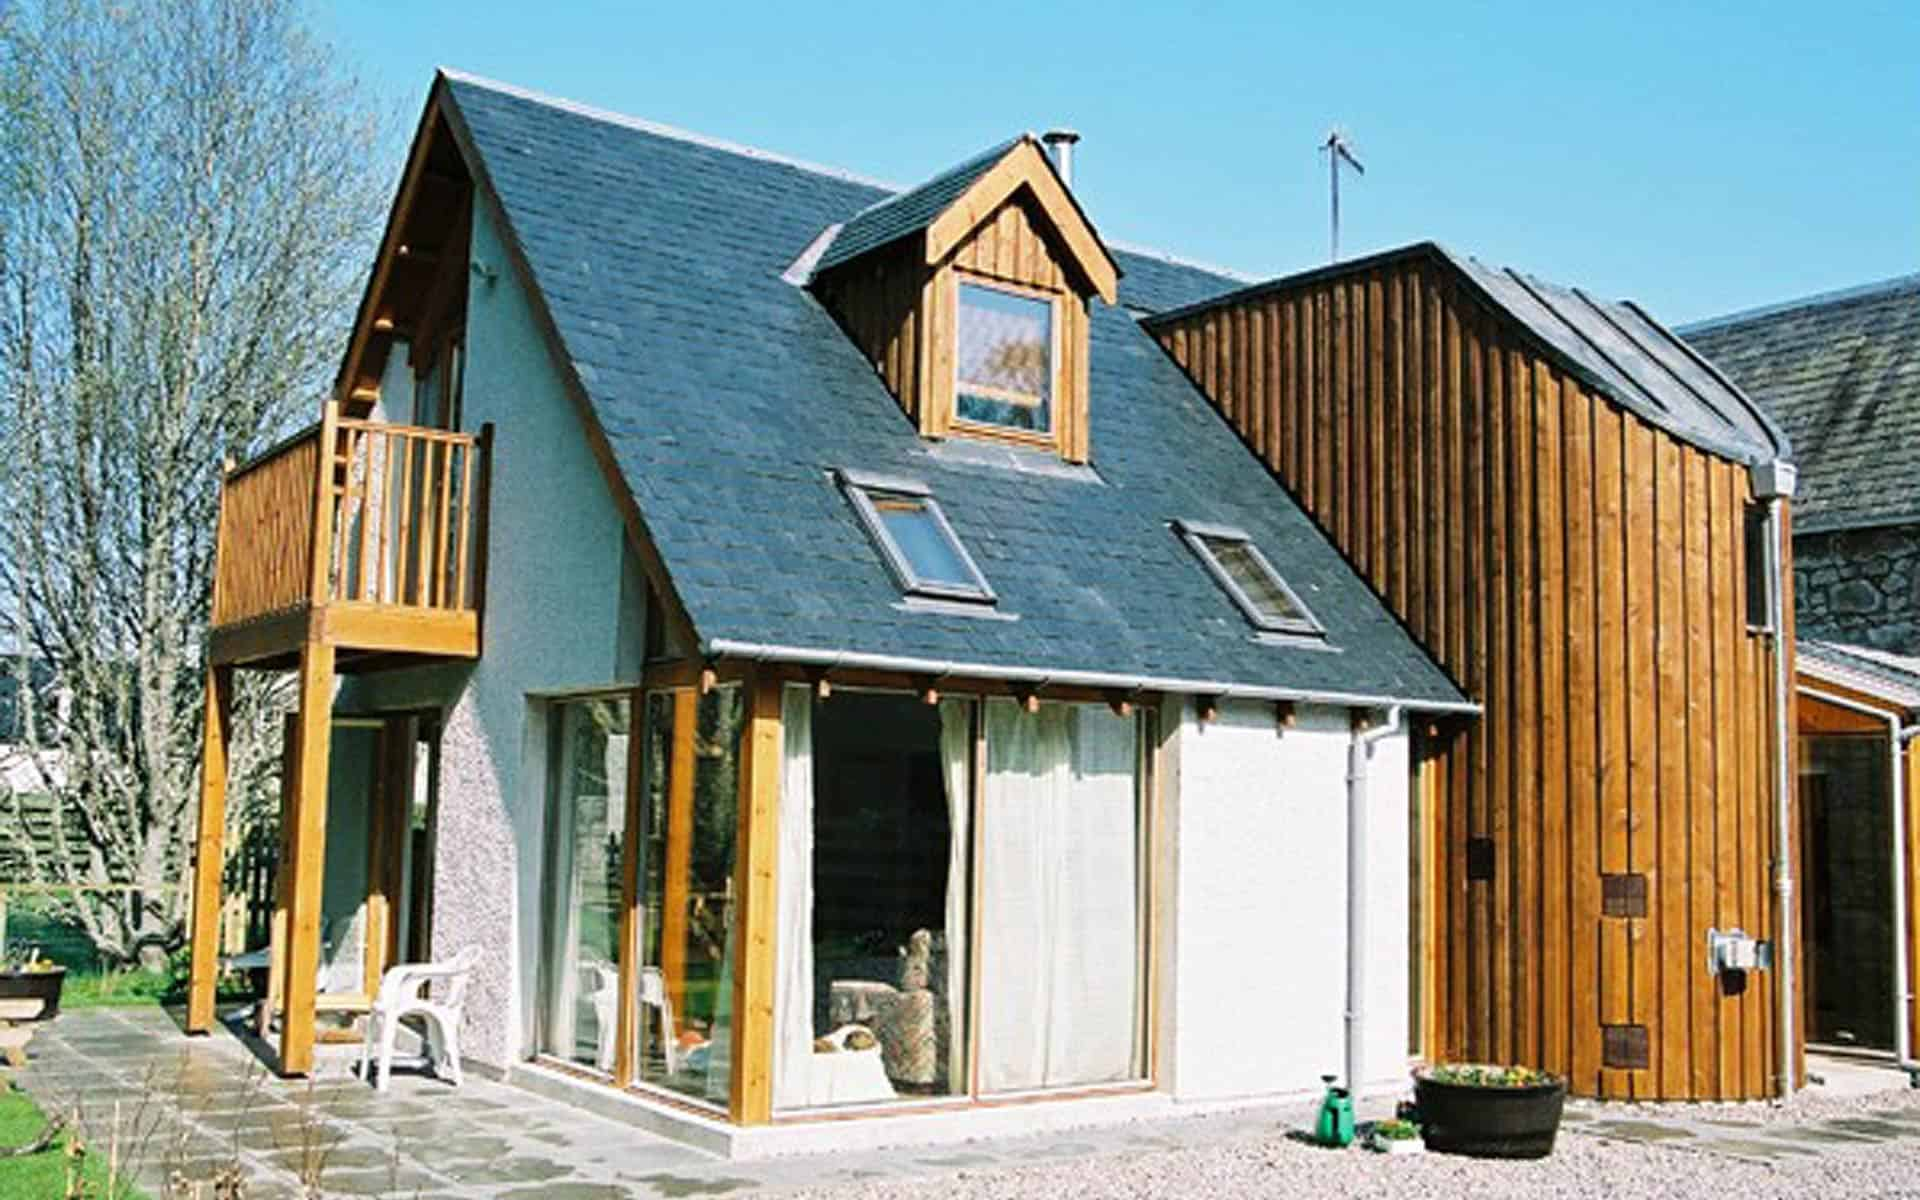 HRI Architects, Architectural Services Inverness Highland